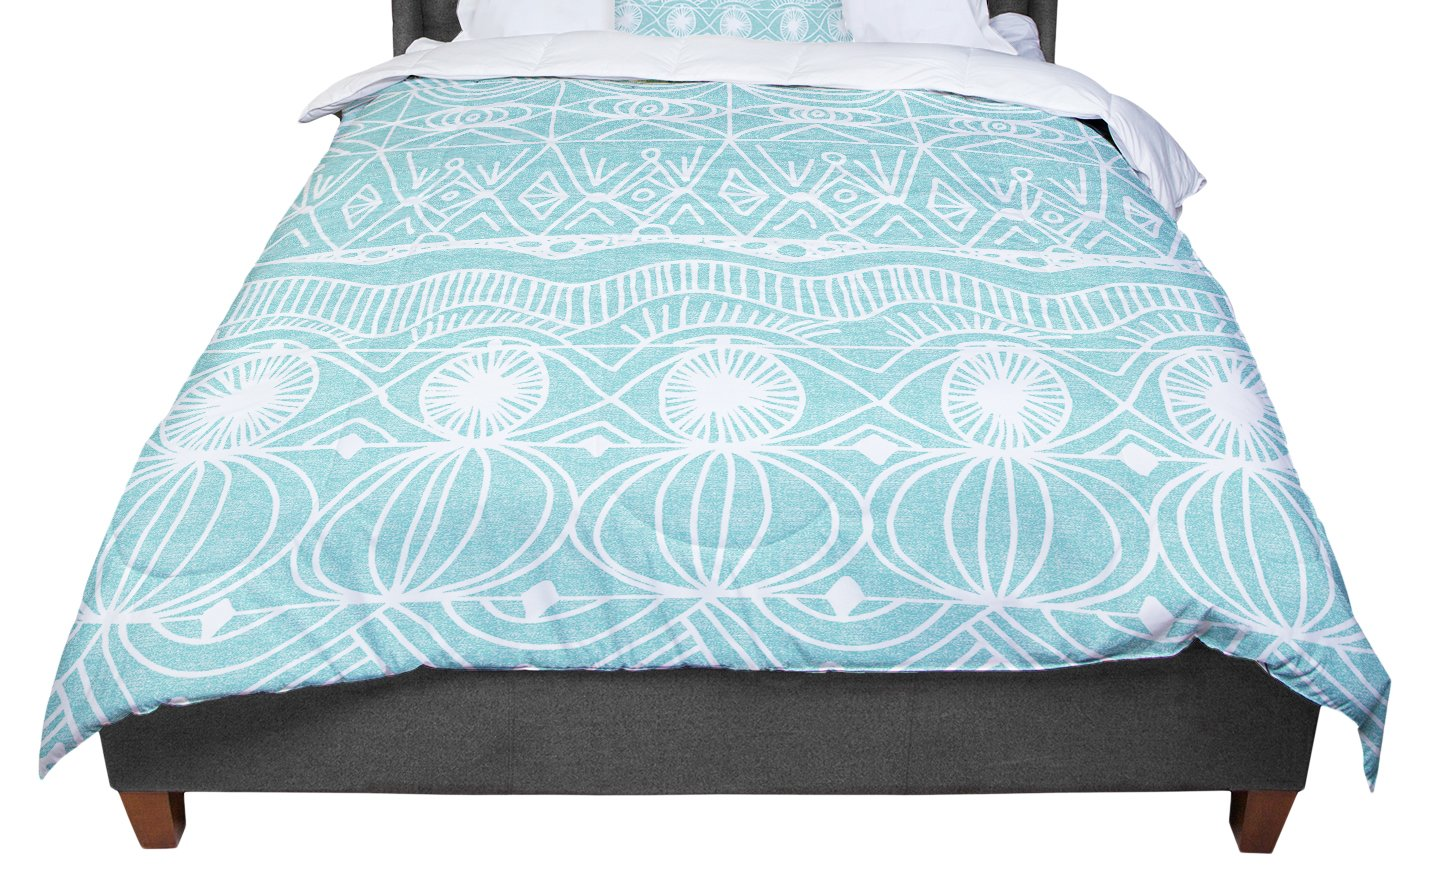 KESS InHouse Catherine Holcombe ''Beach Blanket Bingo'' Twin Comforter, 68'' X 88'' by Kess InHouse